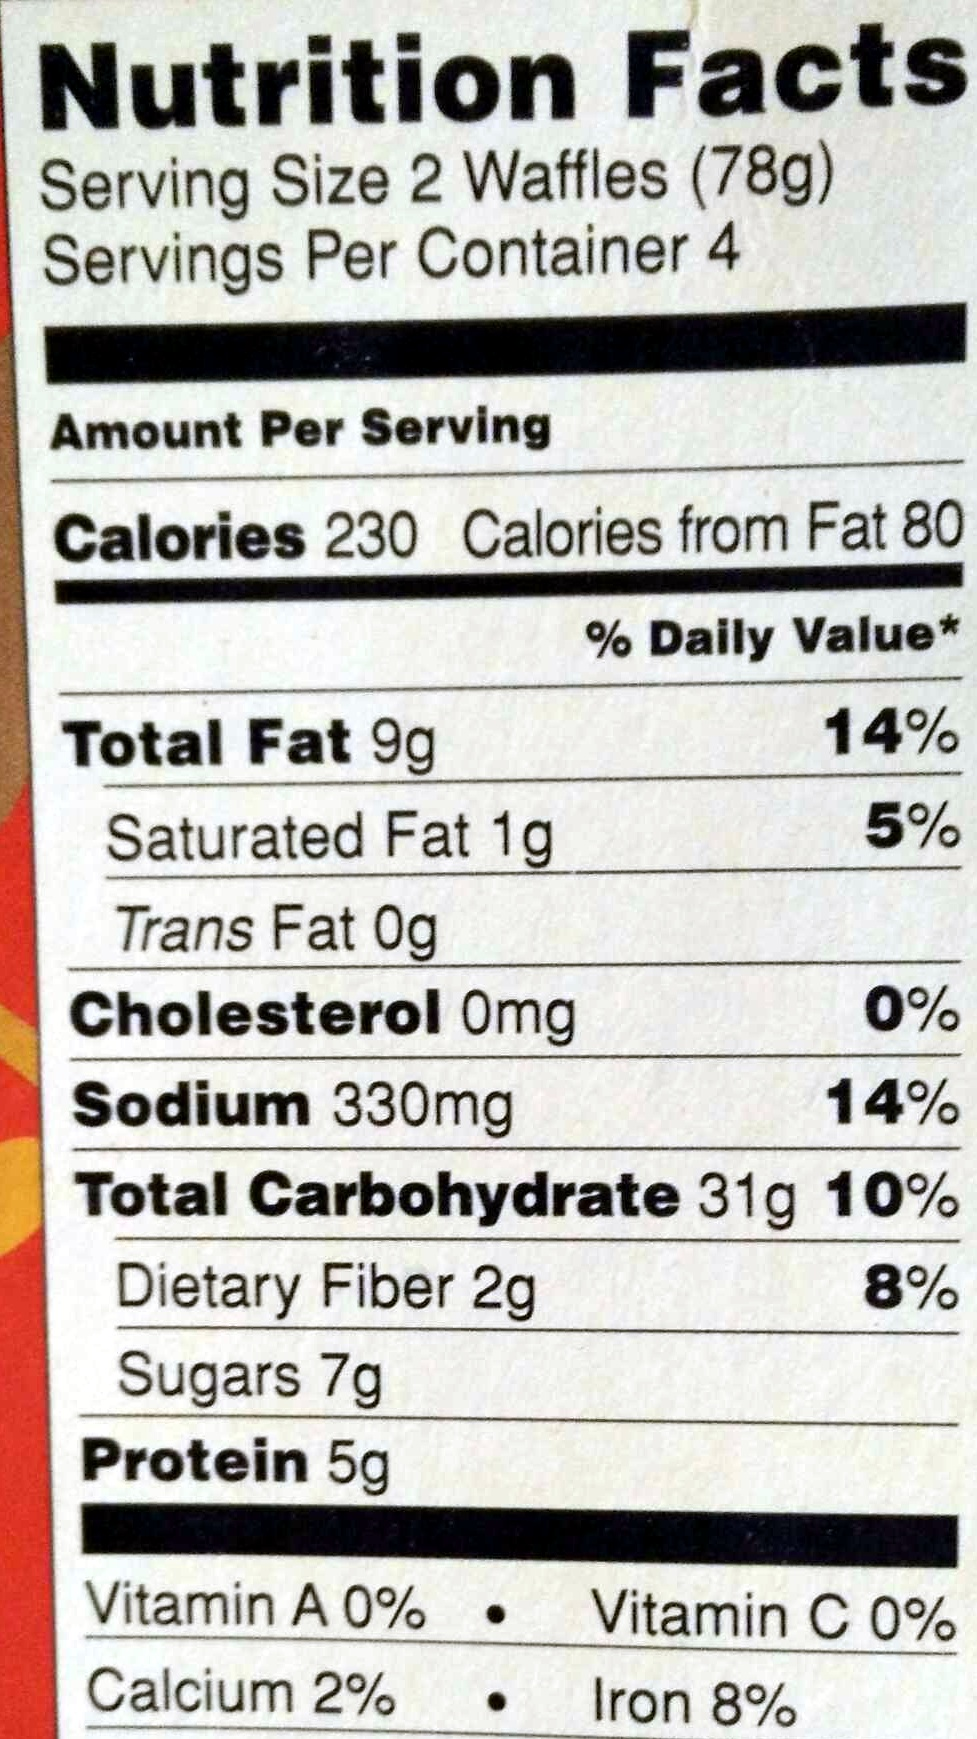 Multigrain Toaster Waffles - Nutrition facts